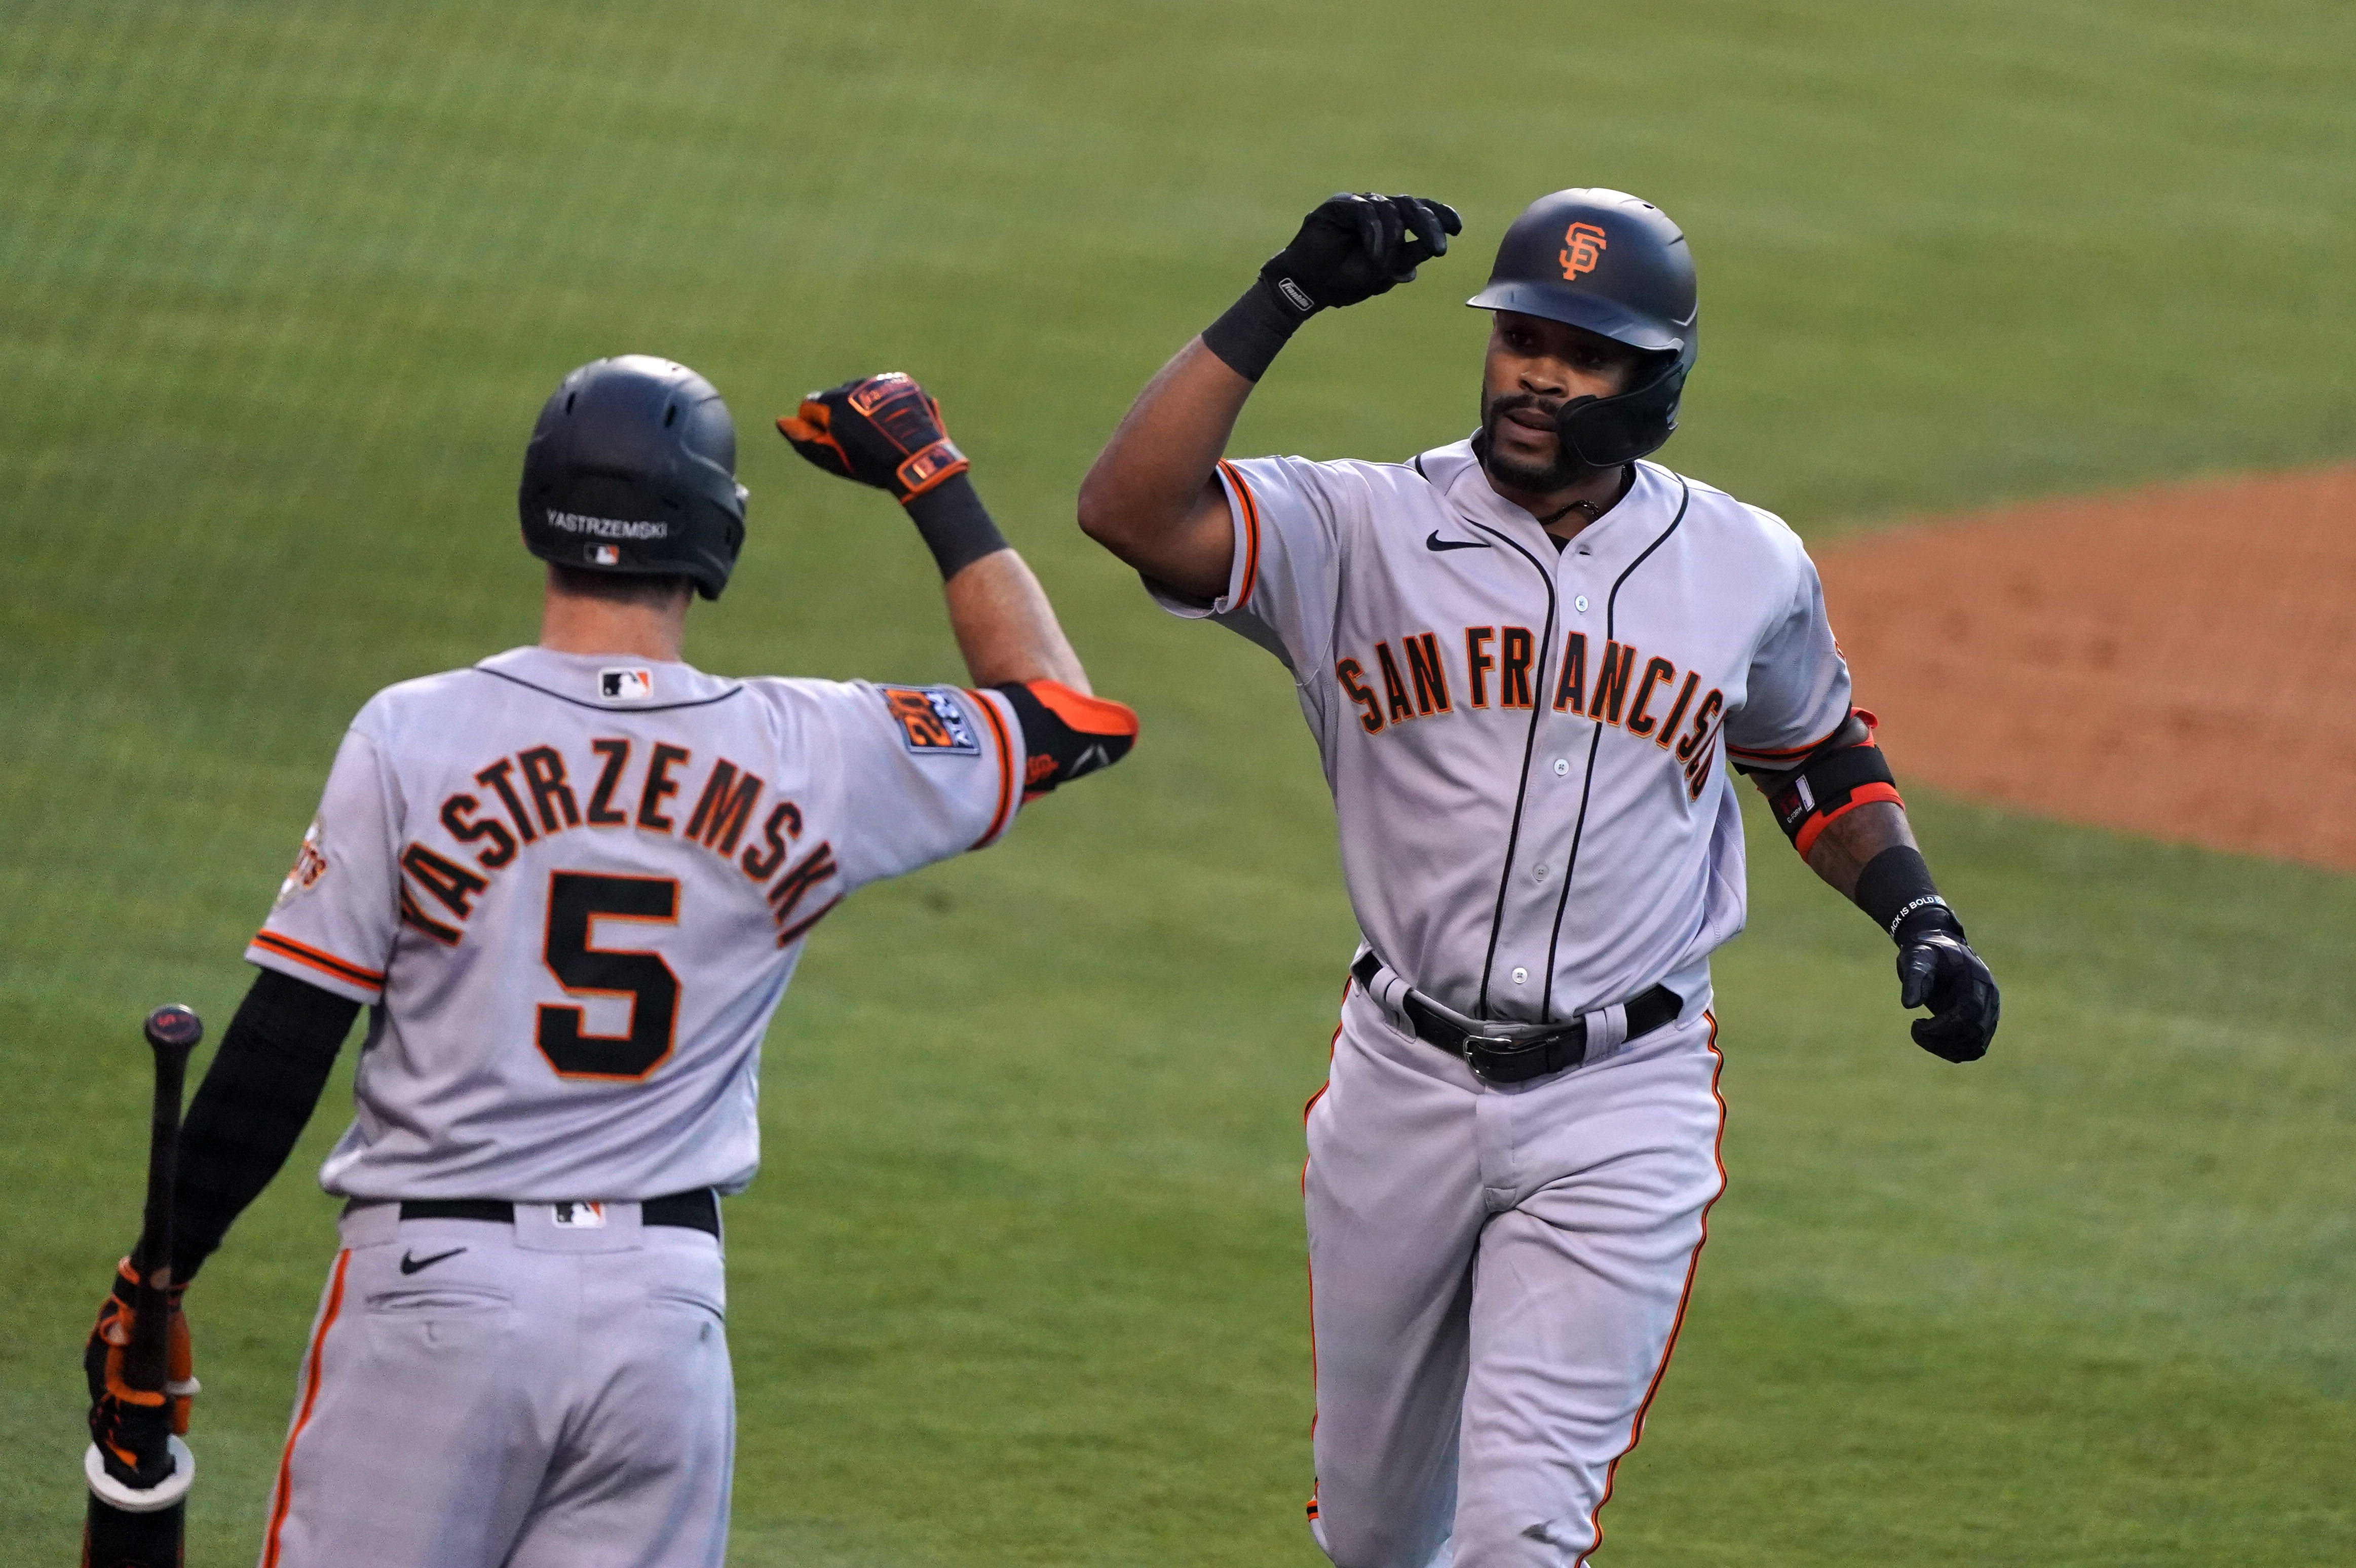 As Giants outfielders go down, why isn't Jaylin Davis back on the roster?